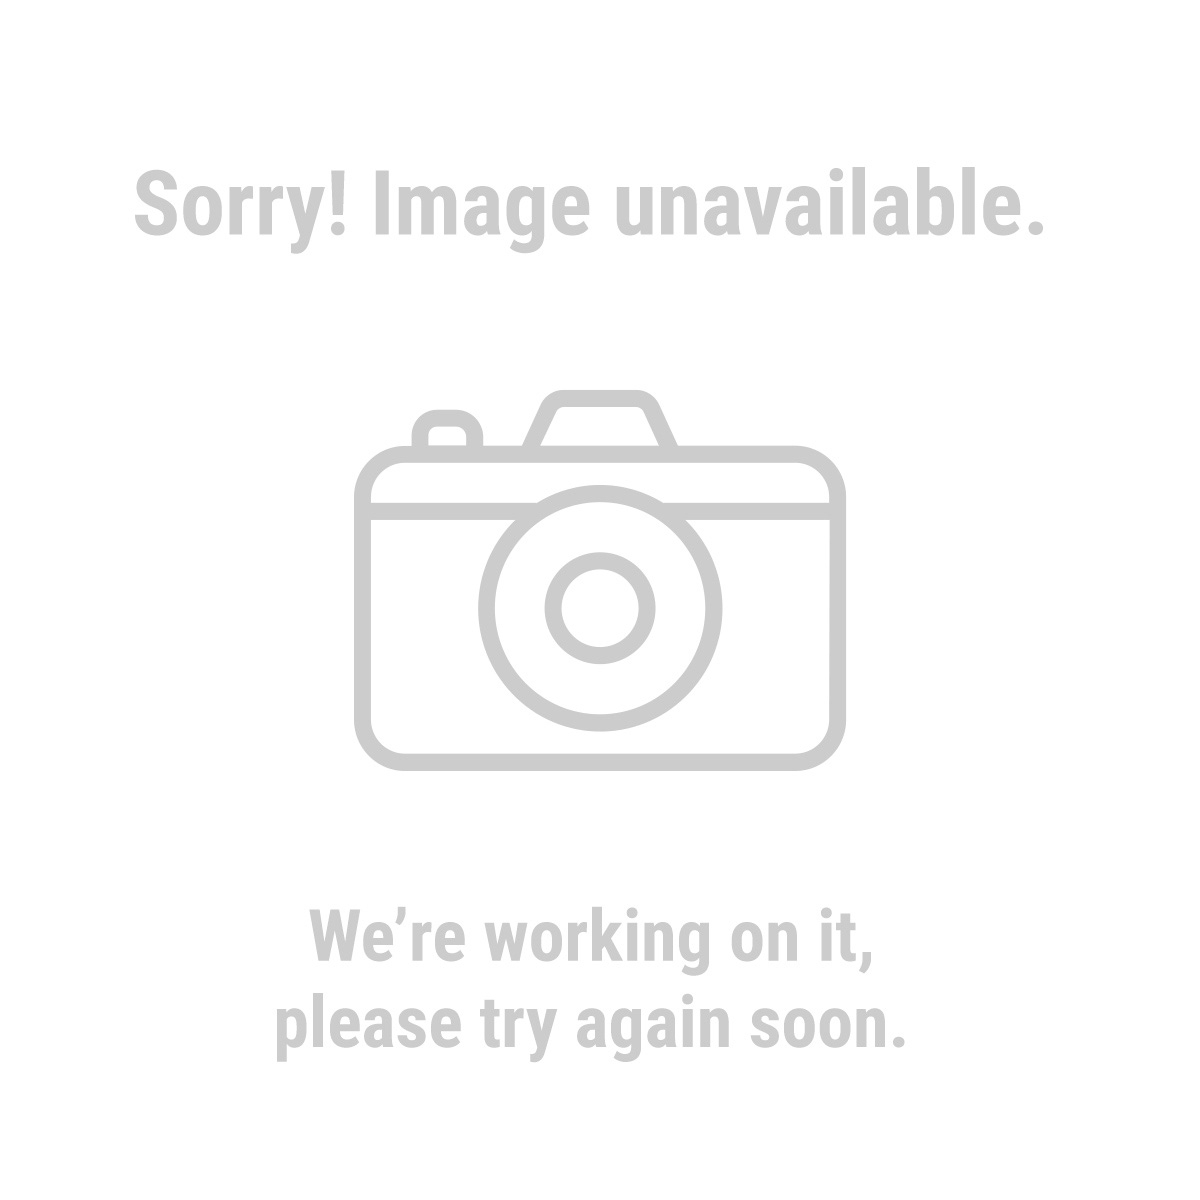 Details about Chicago Electric 3-in-1, 1 In. SDS Rotary Hammer 97743